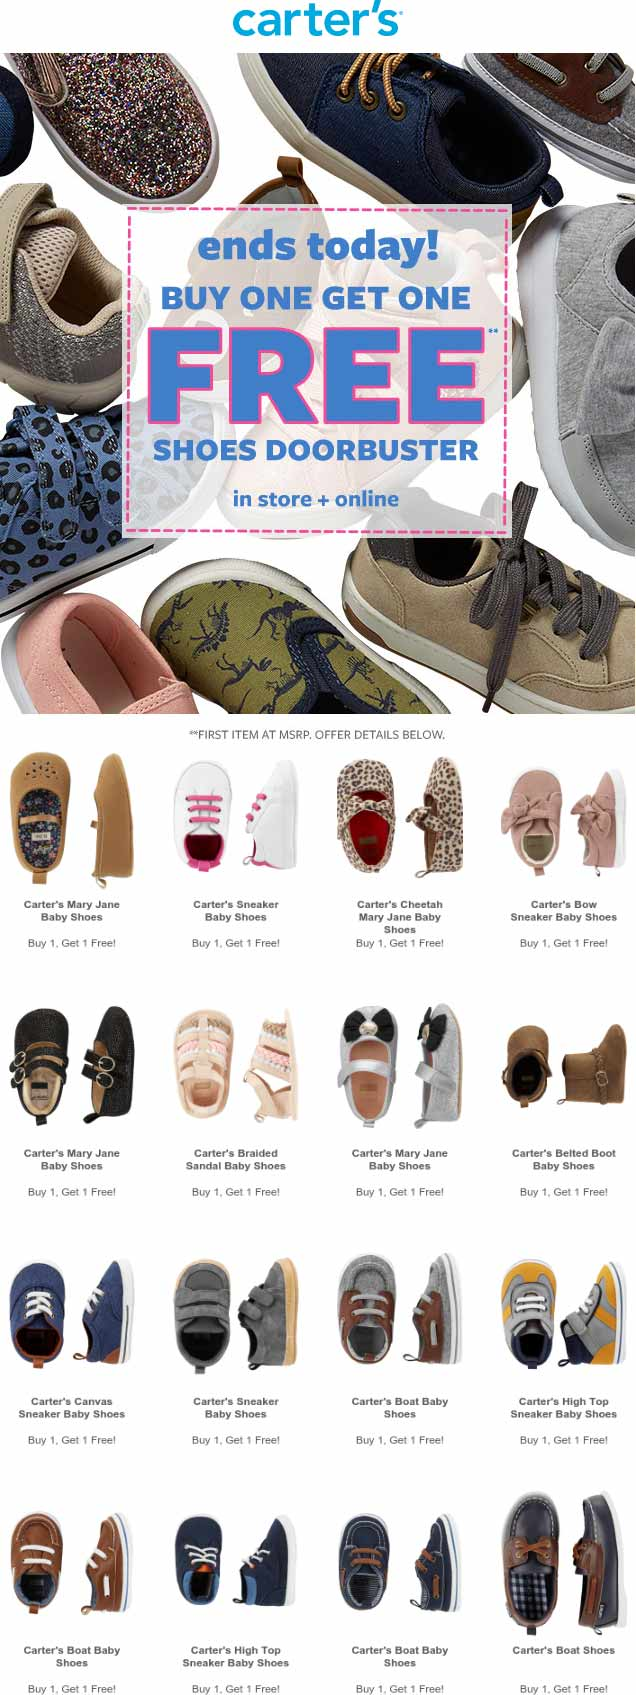 Carters Coupon November 2019 2nd pair shoes free today at Carters, ditto online